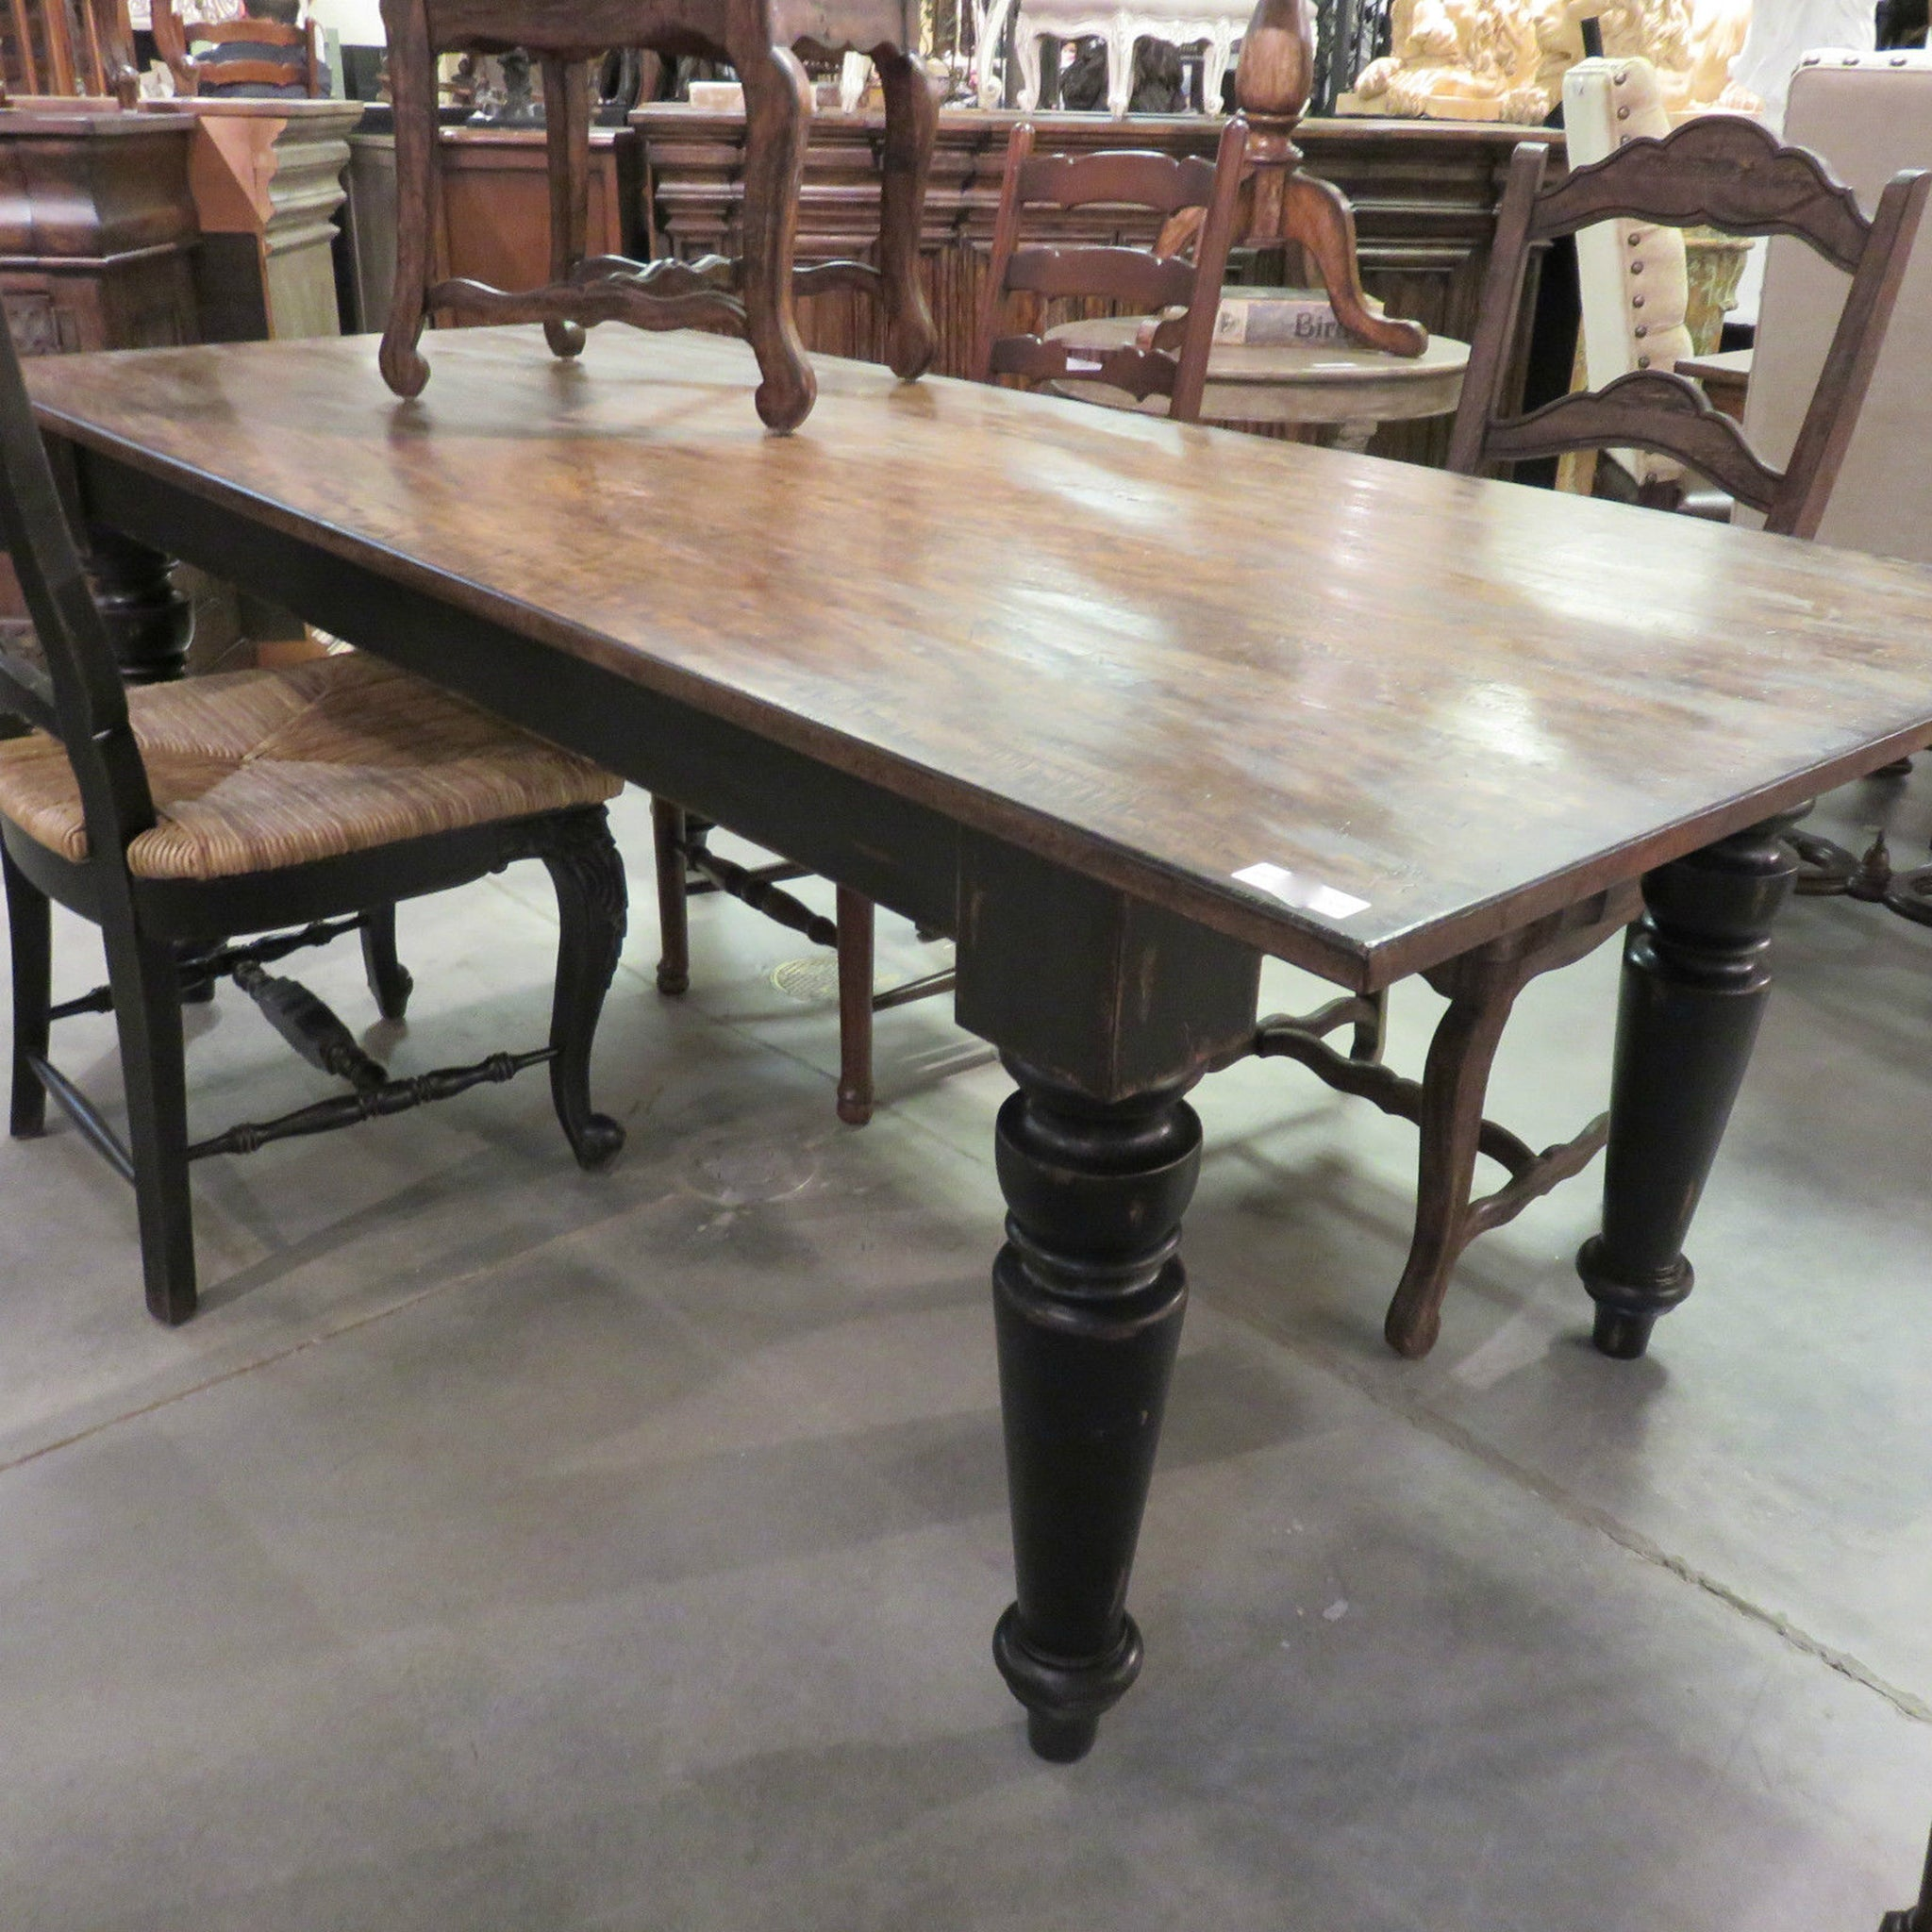 "Rustic Farmhouse Dining Table 84"" Black Distressed Reclaimed Wood Top - Furniture on Main"